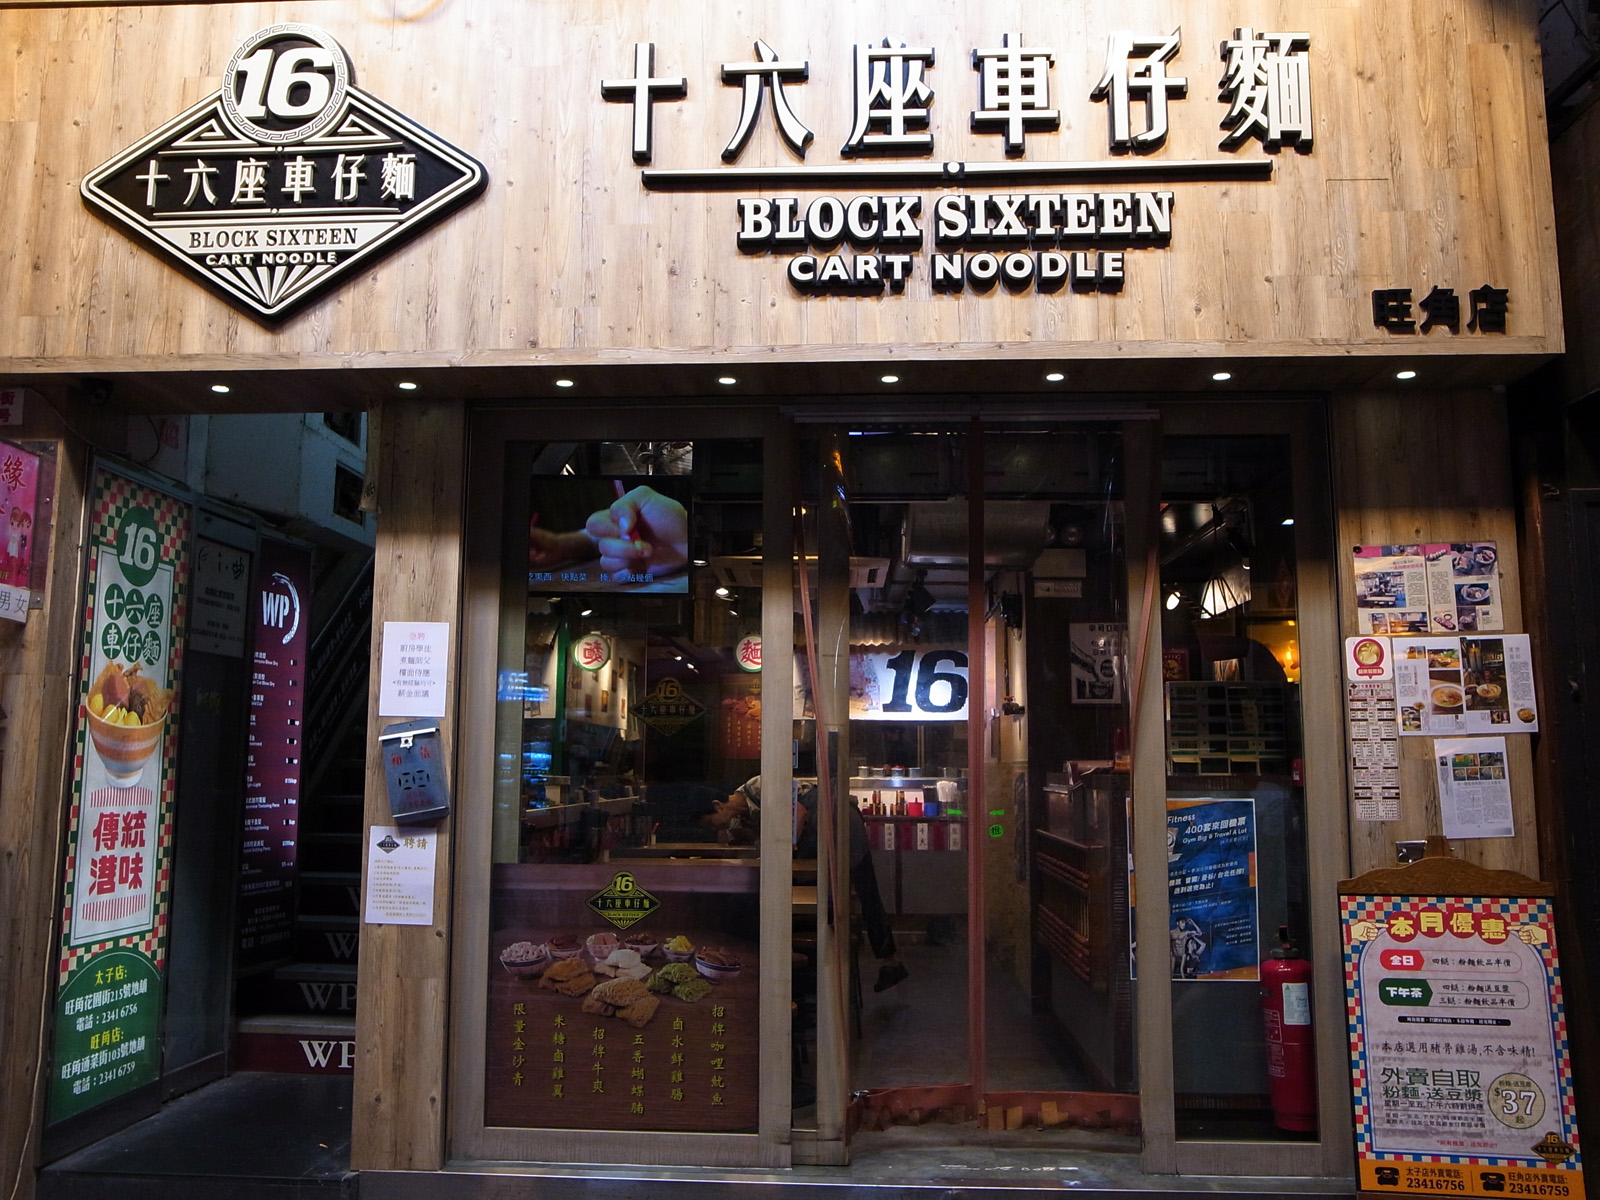 Hong-Kong_Block-Sixteen-Cart-Noodle_entrance""""